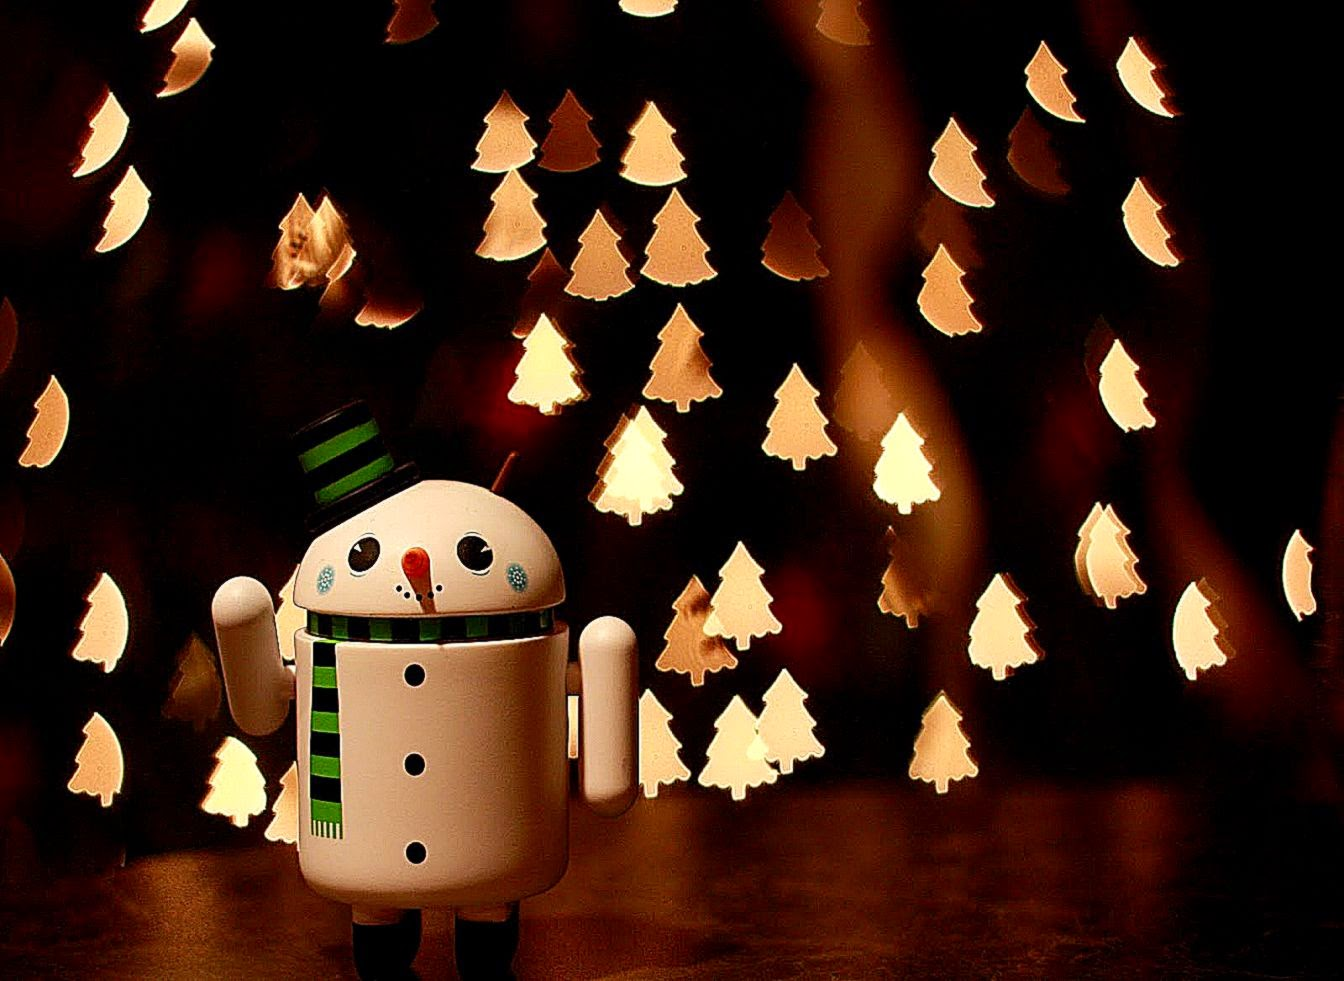 Wallpaper Hd 3D Christmas For Android Mobile